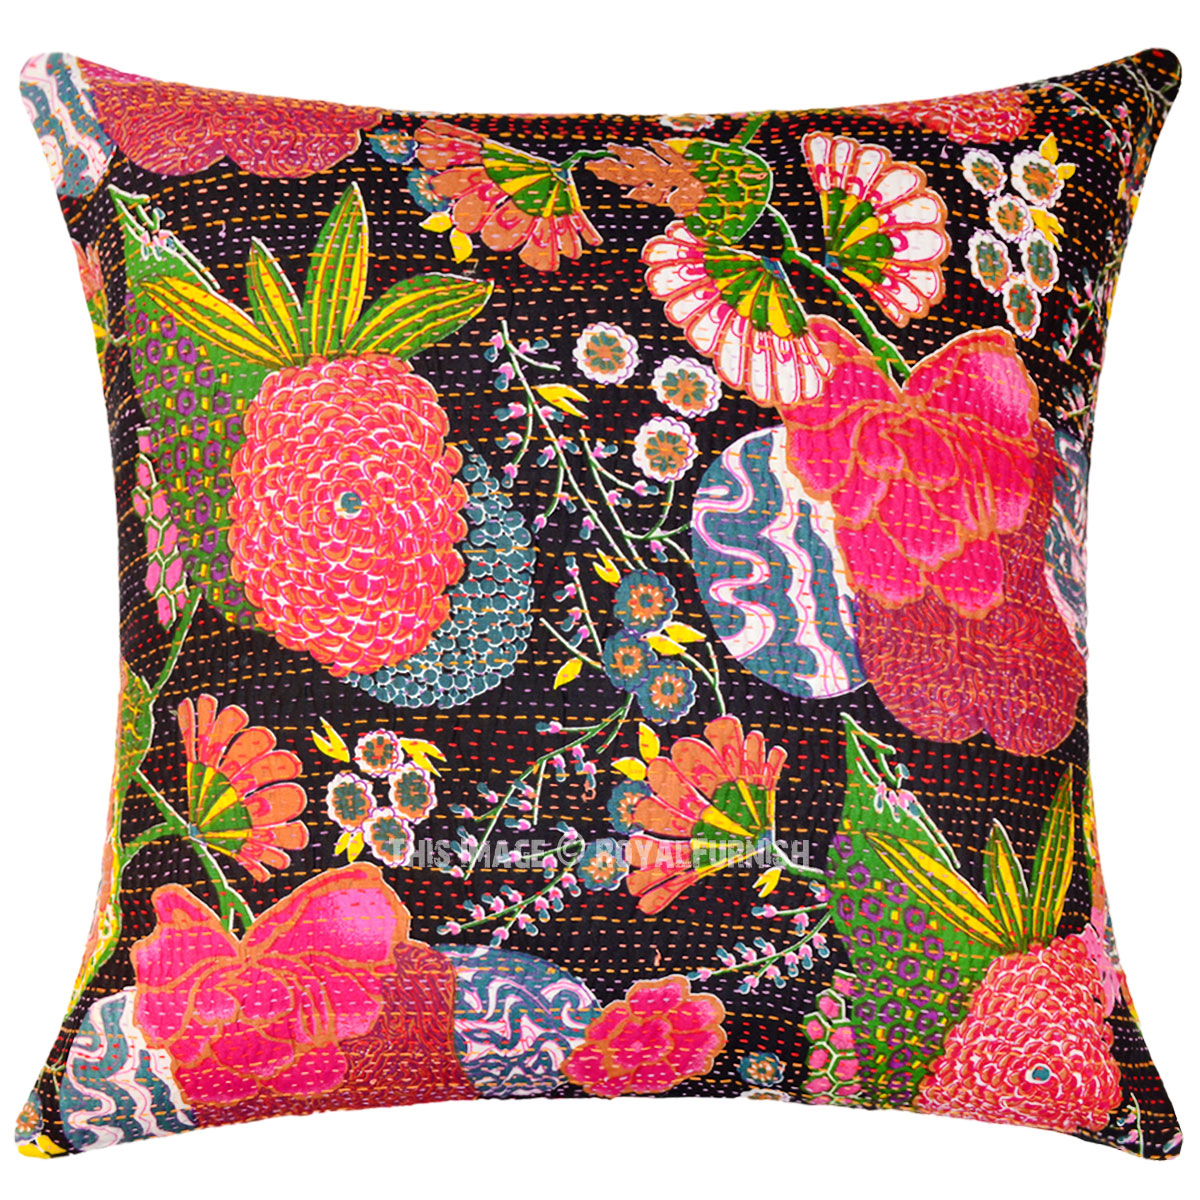 Giant large 24x24 decorative boho accent cotton kantha throw pillow cover - What is a throw pillow ...